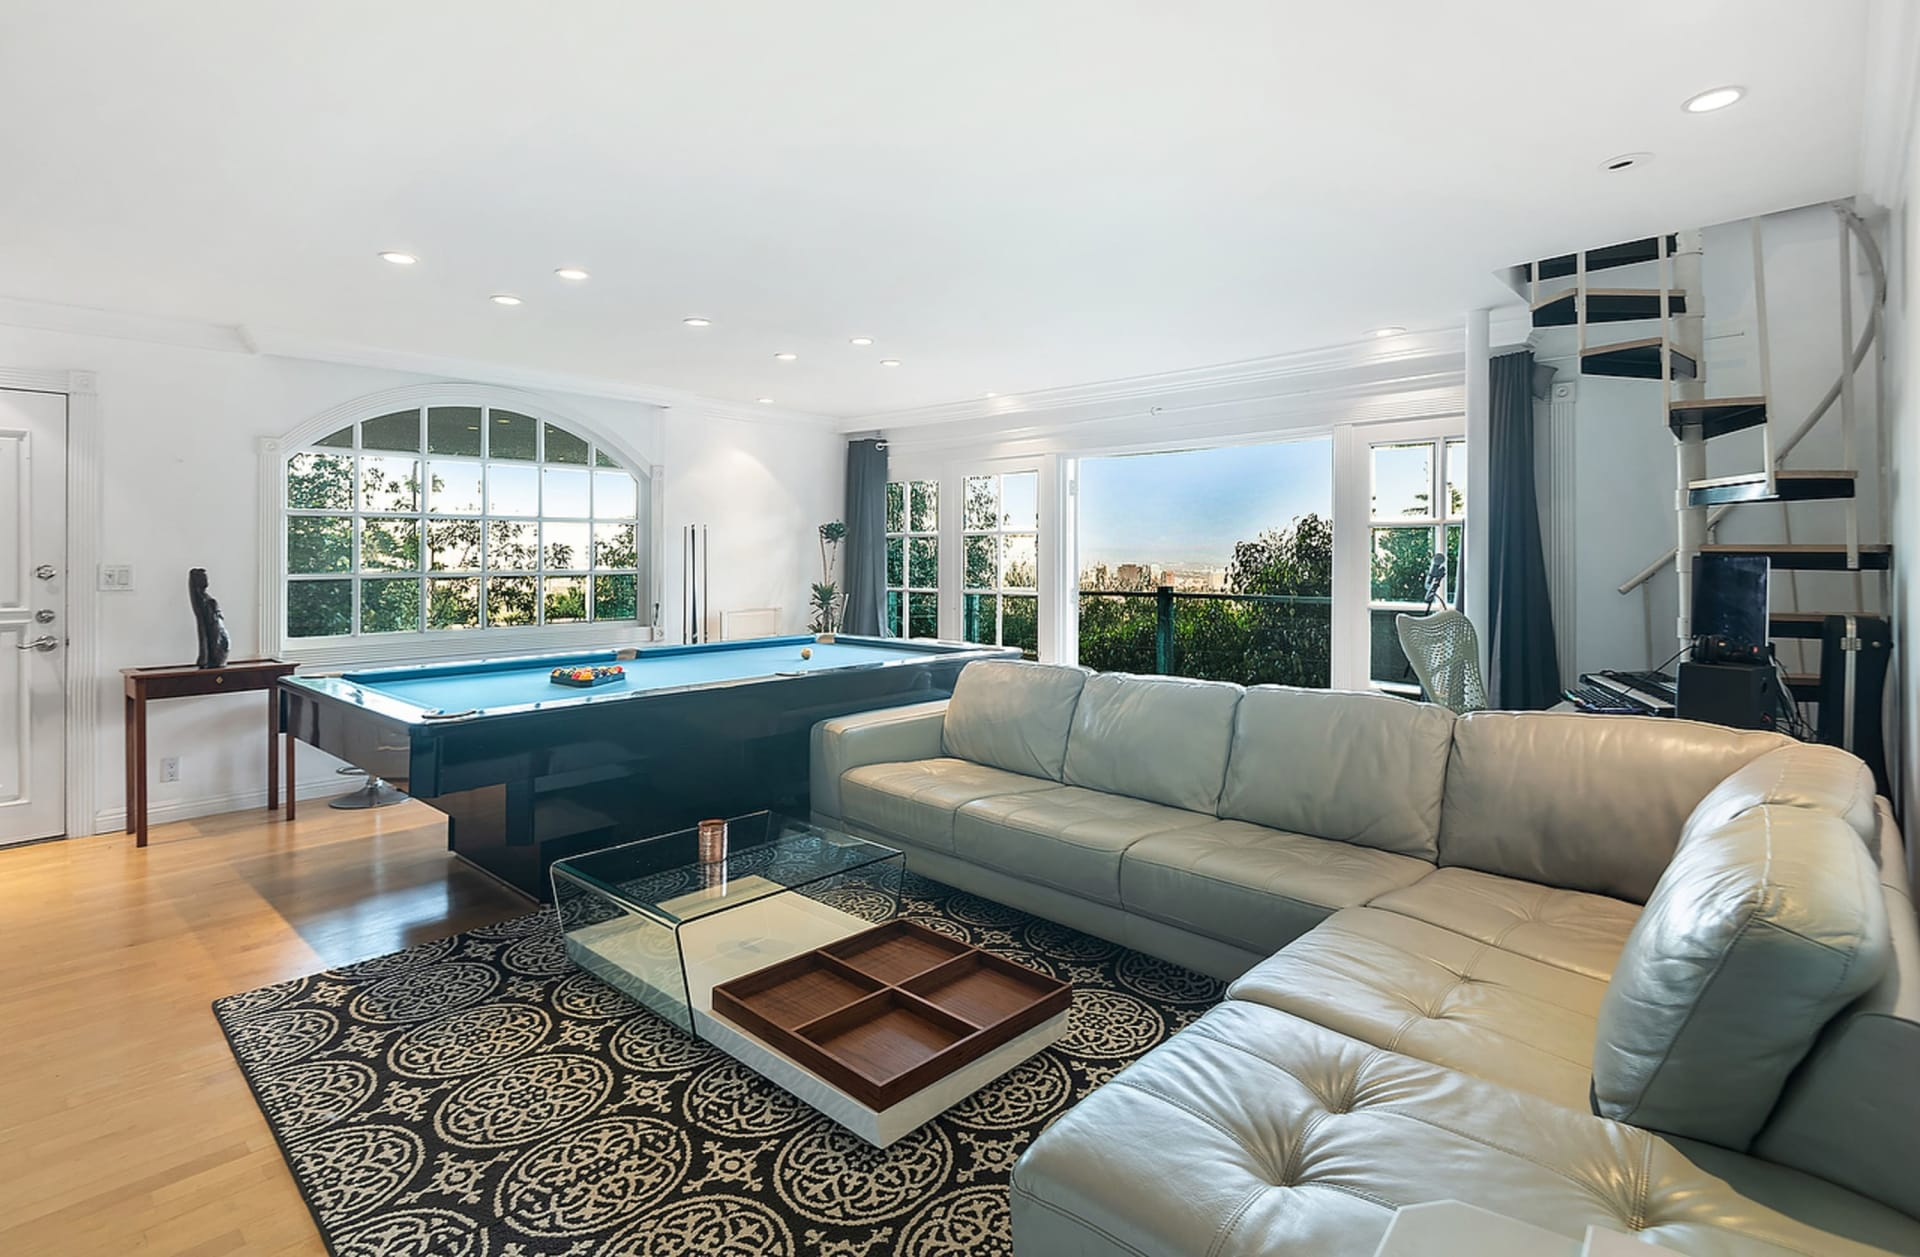 Incredible View Property in Lower Bel Air